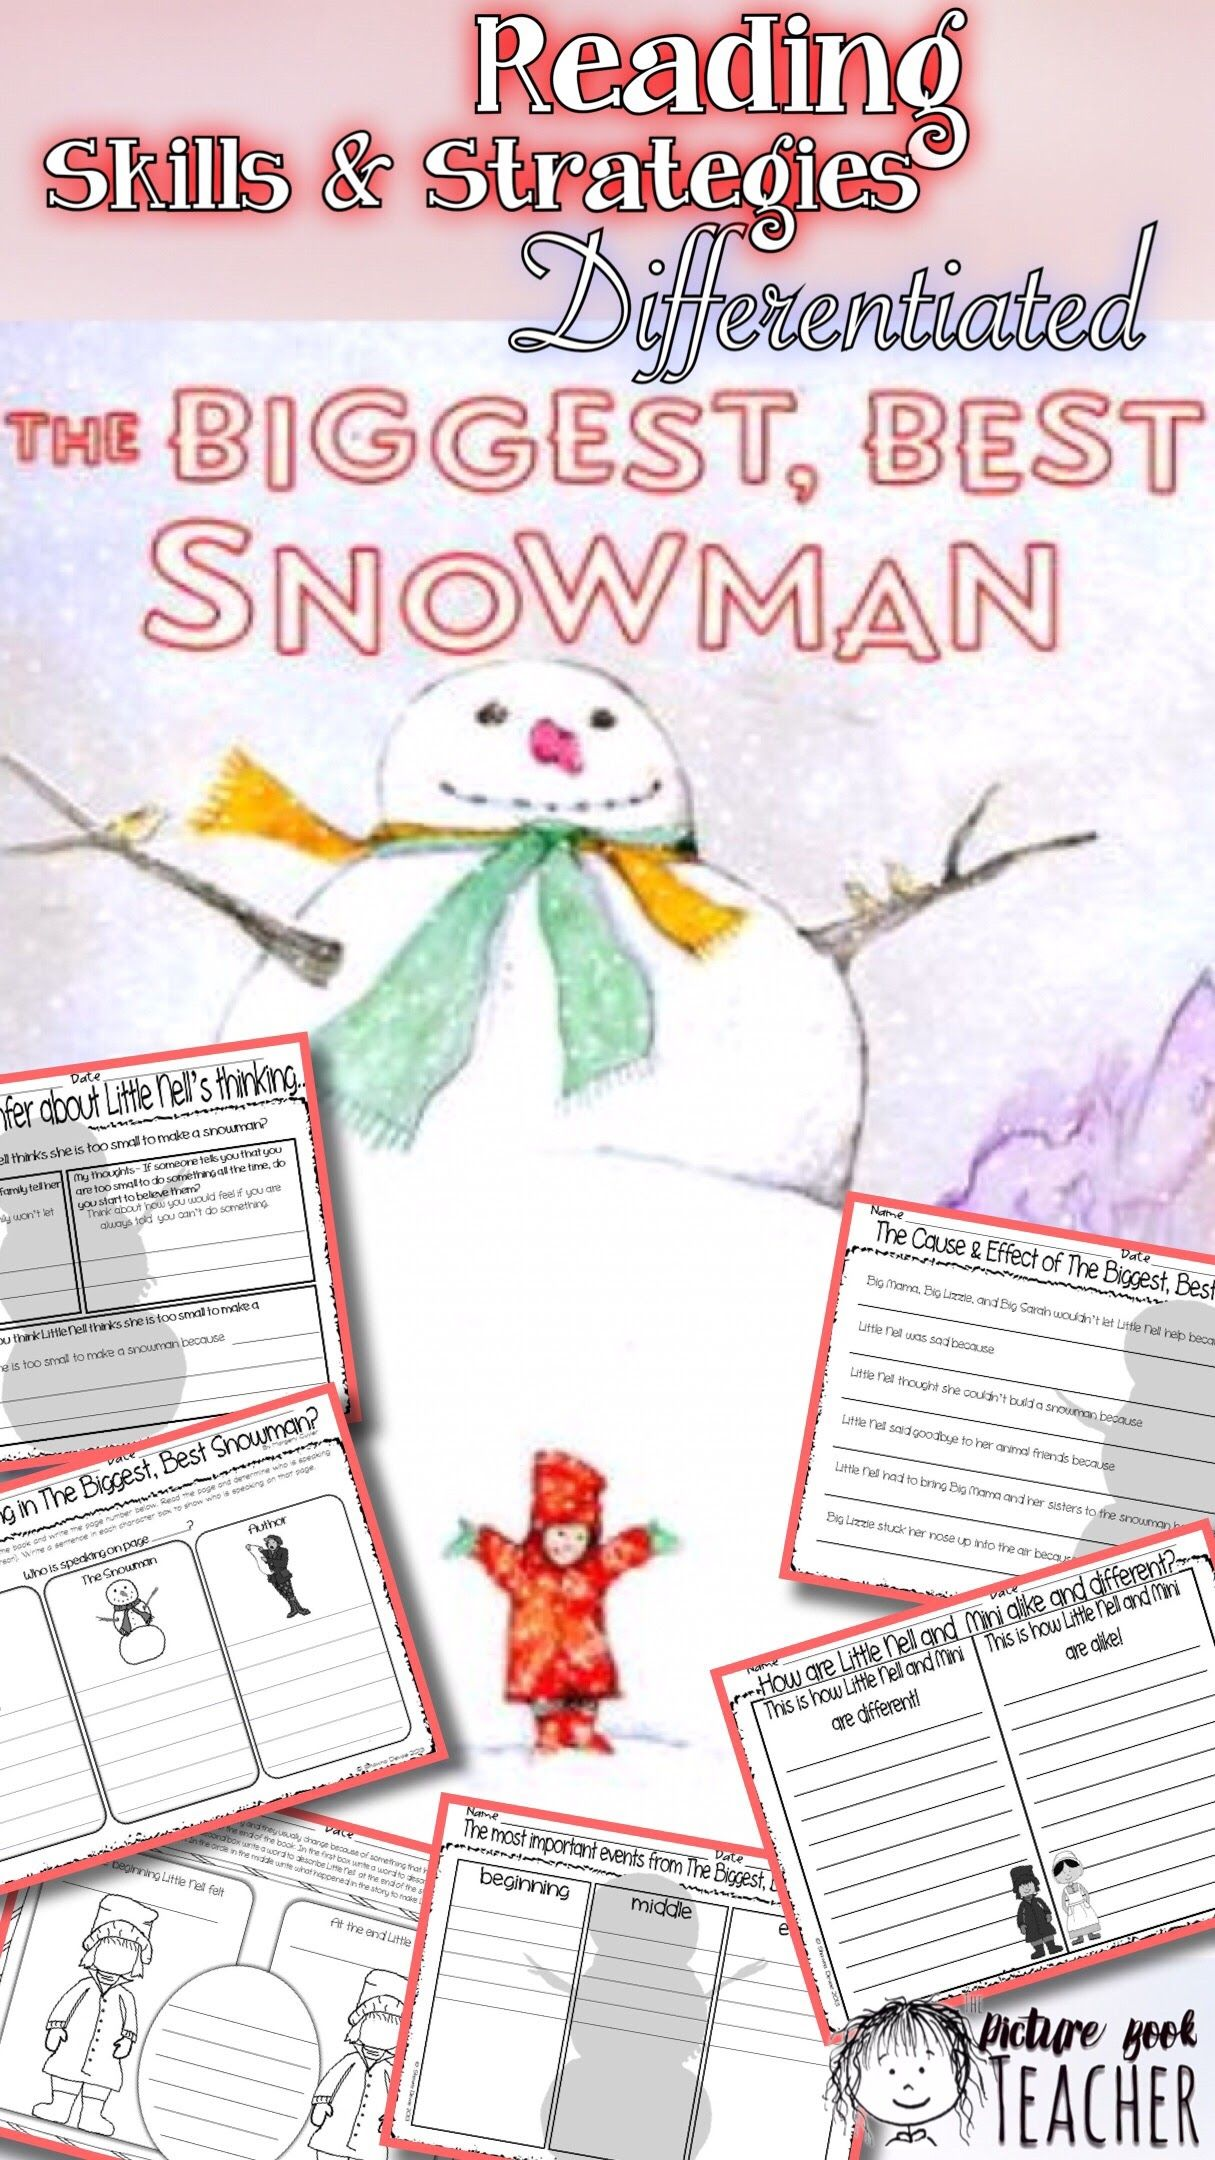 Skills Amp Strategies Inspired By The Biggest Best Snowman